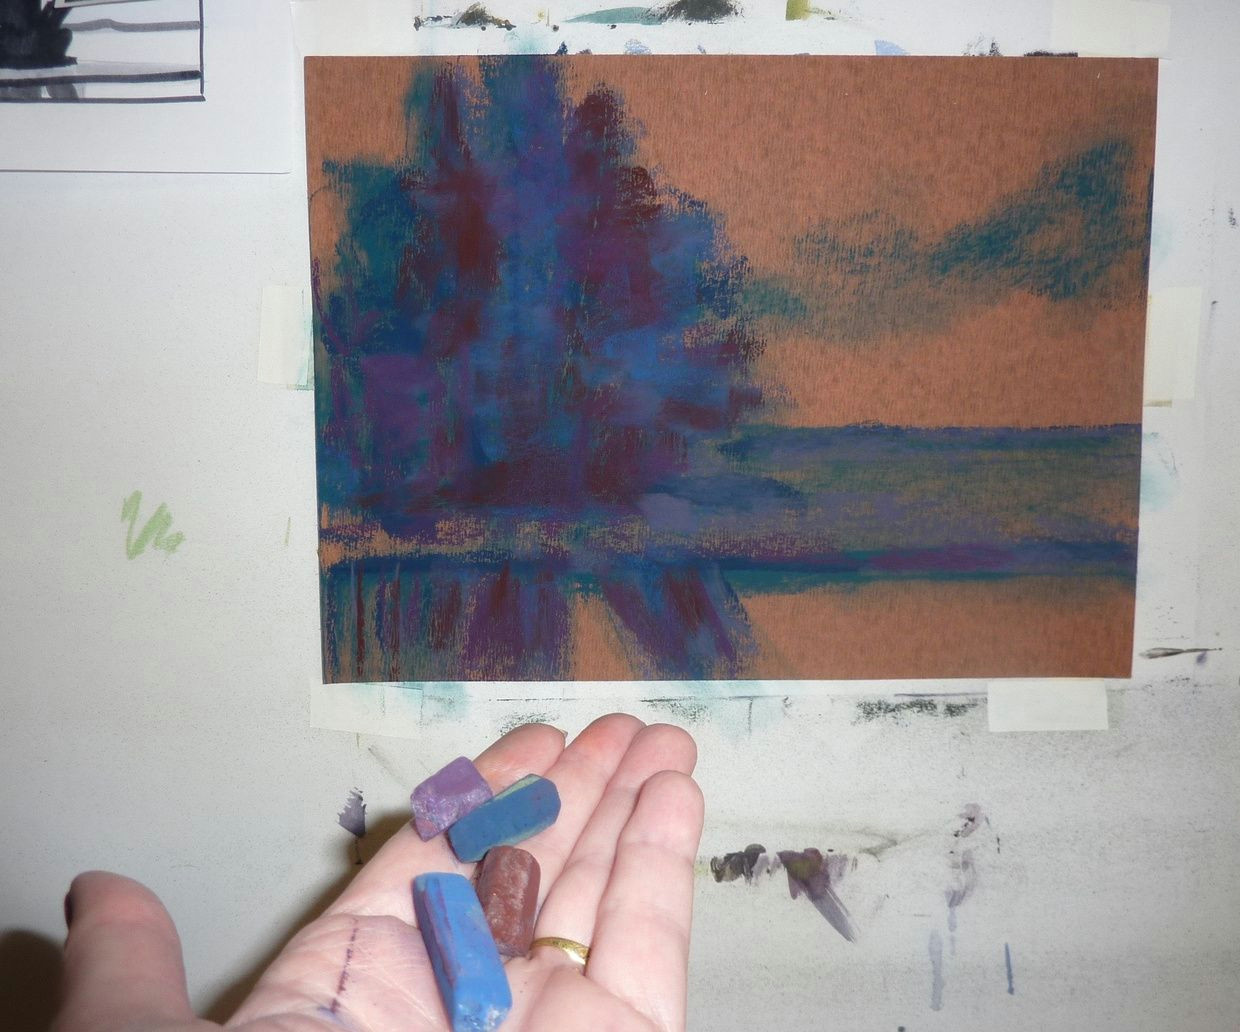 karen margulis is creating pastel lessons videos demos paint alongs hand outs and more patreon